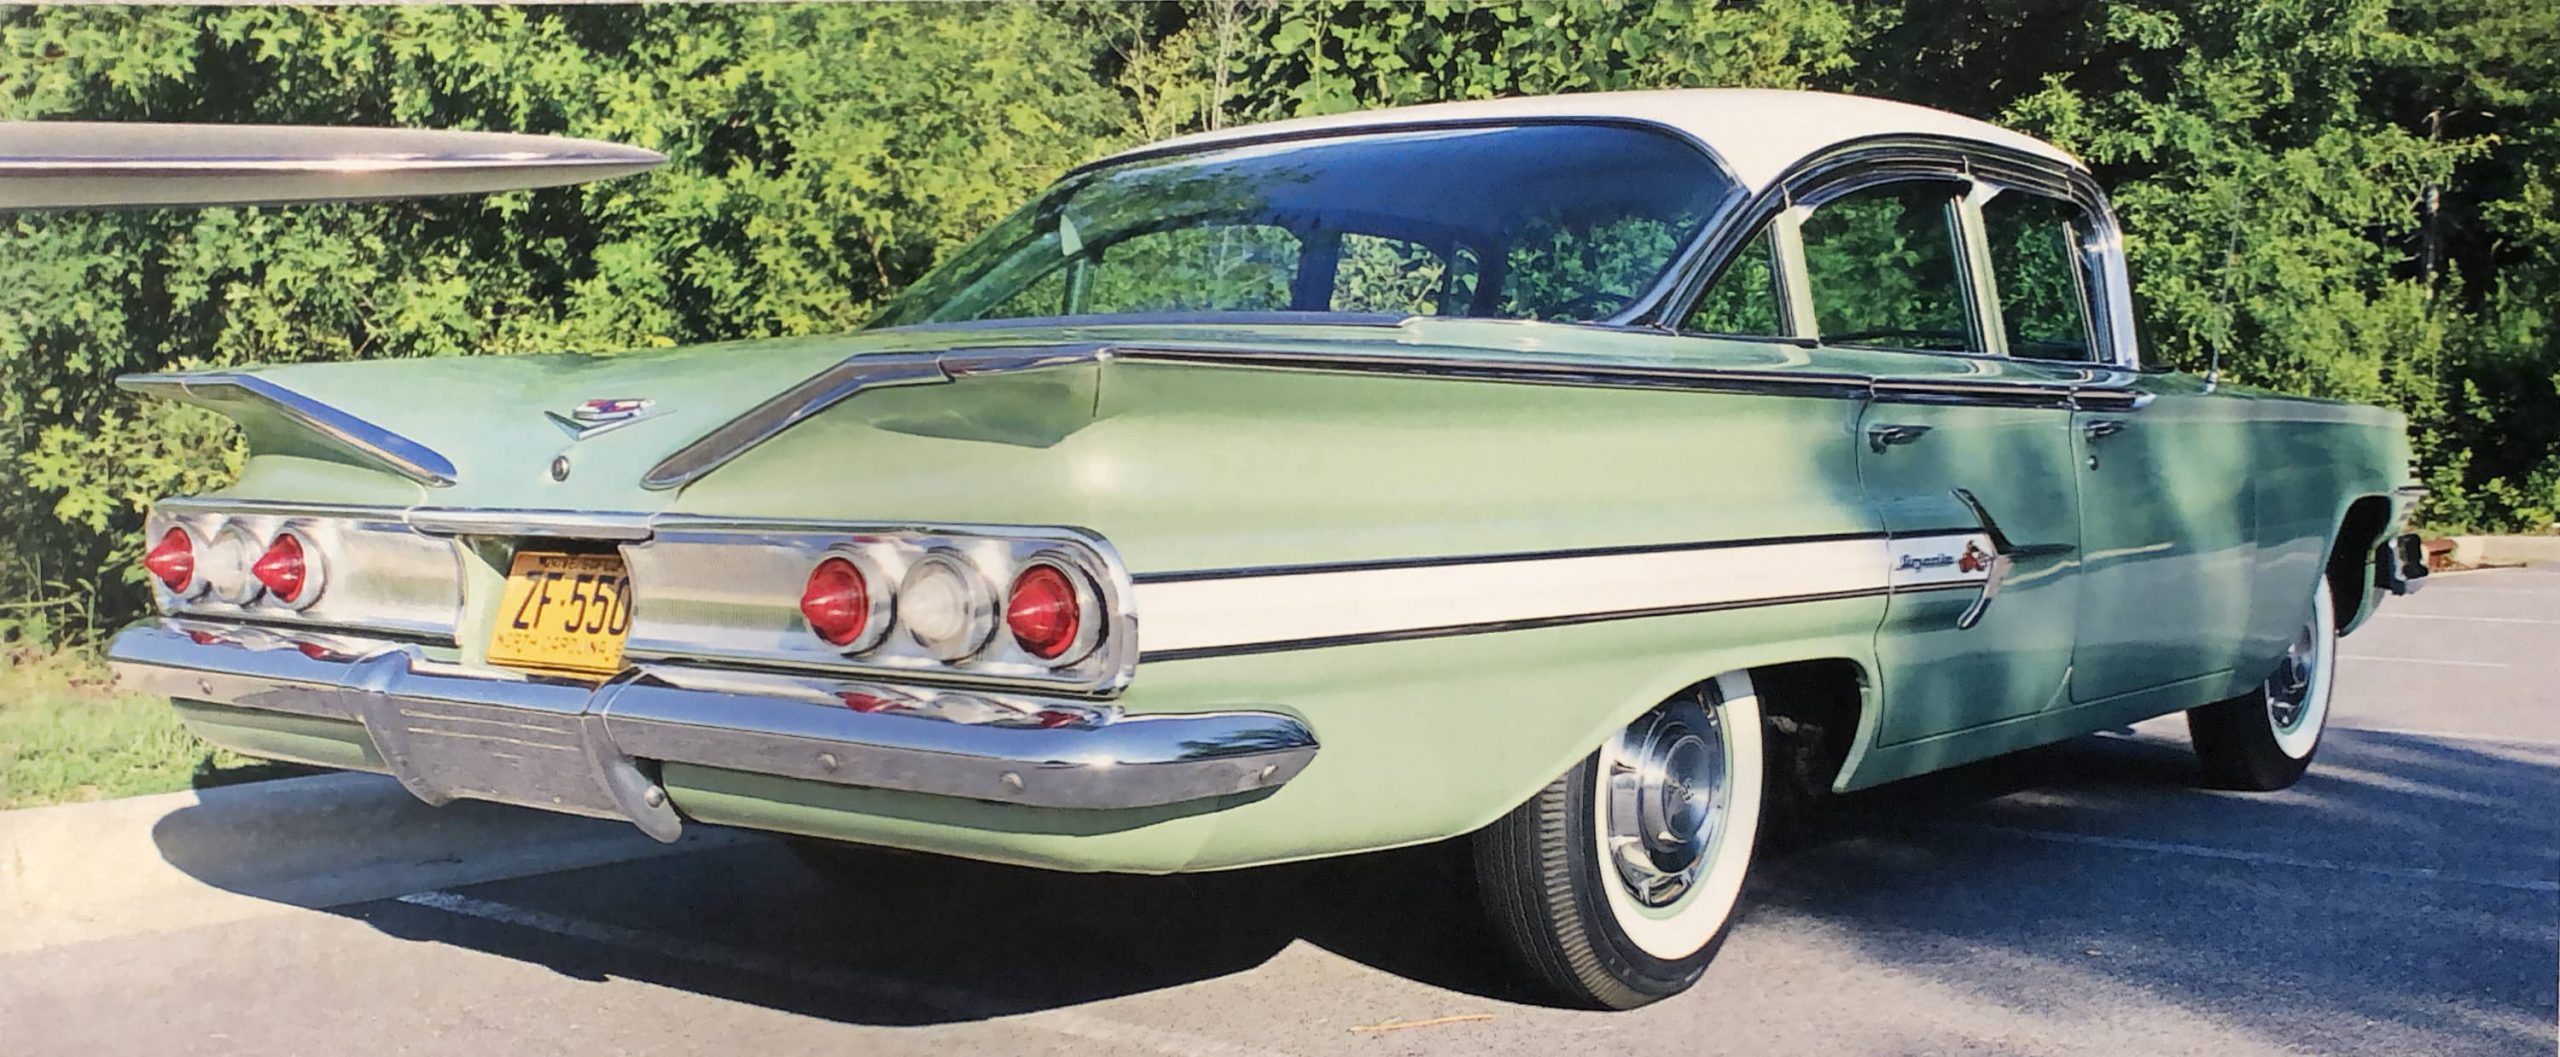 Rear three quarter view of a green and white 1960 Chevy Impala from the October 2020 Generator & Distributor Magazine article featuring paint restoration by Automotive Collision Specialists in Fuquay Varina NC.